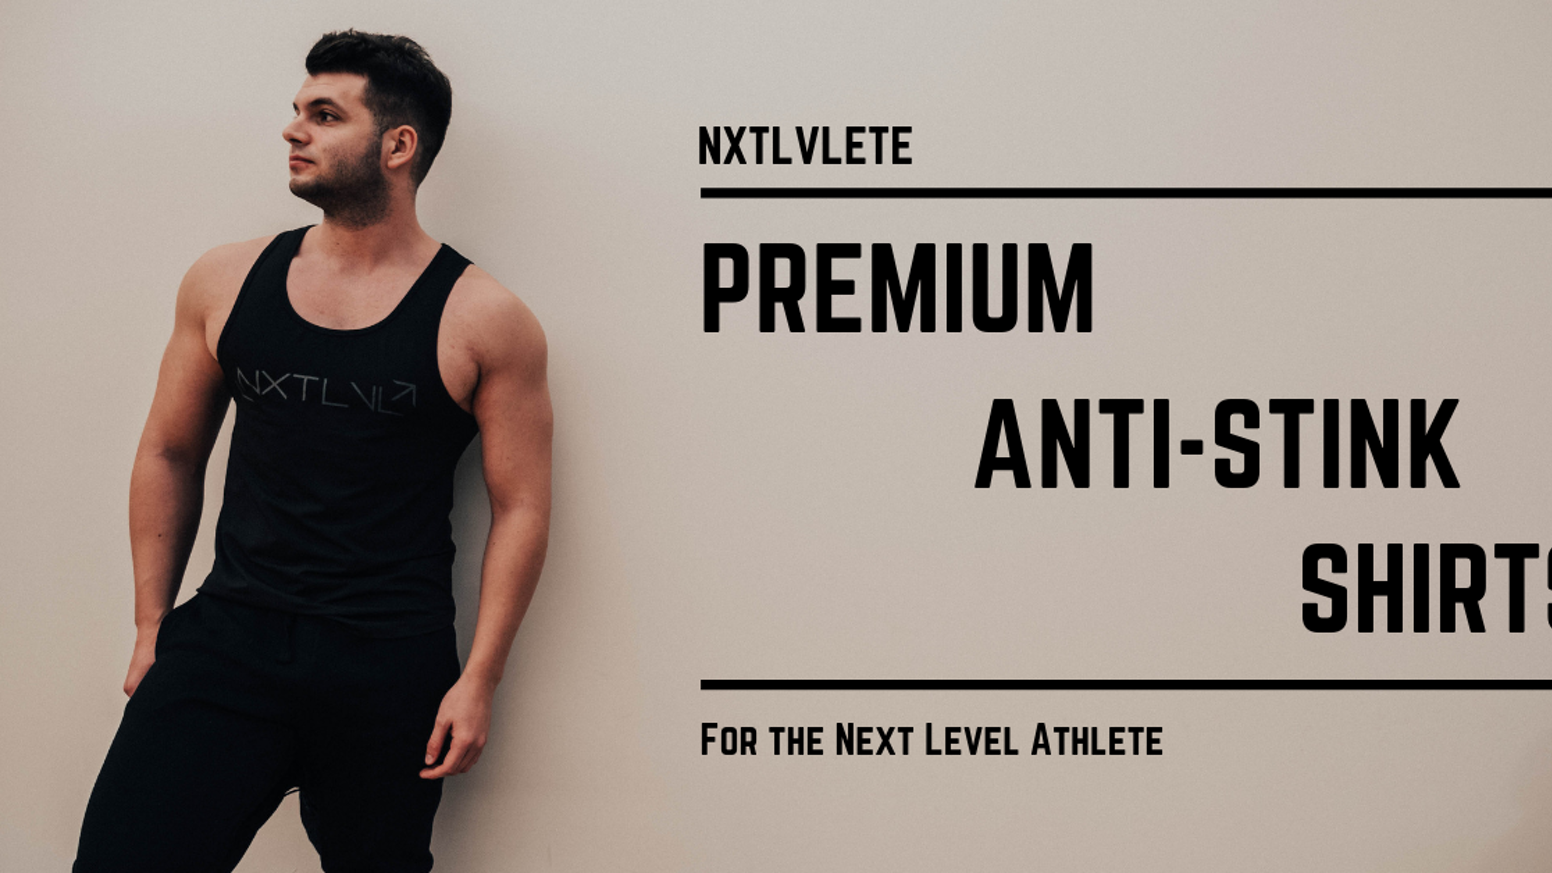 Next Level Fitness Apparel designed for Next Level Athletes. The World's First Premium Anti-stink Fitness & Travel apparel designed for men